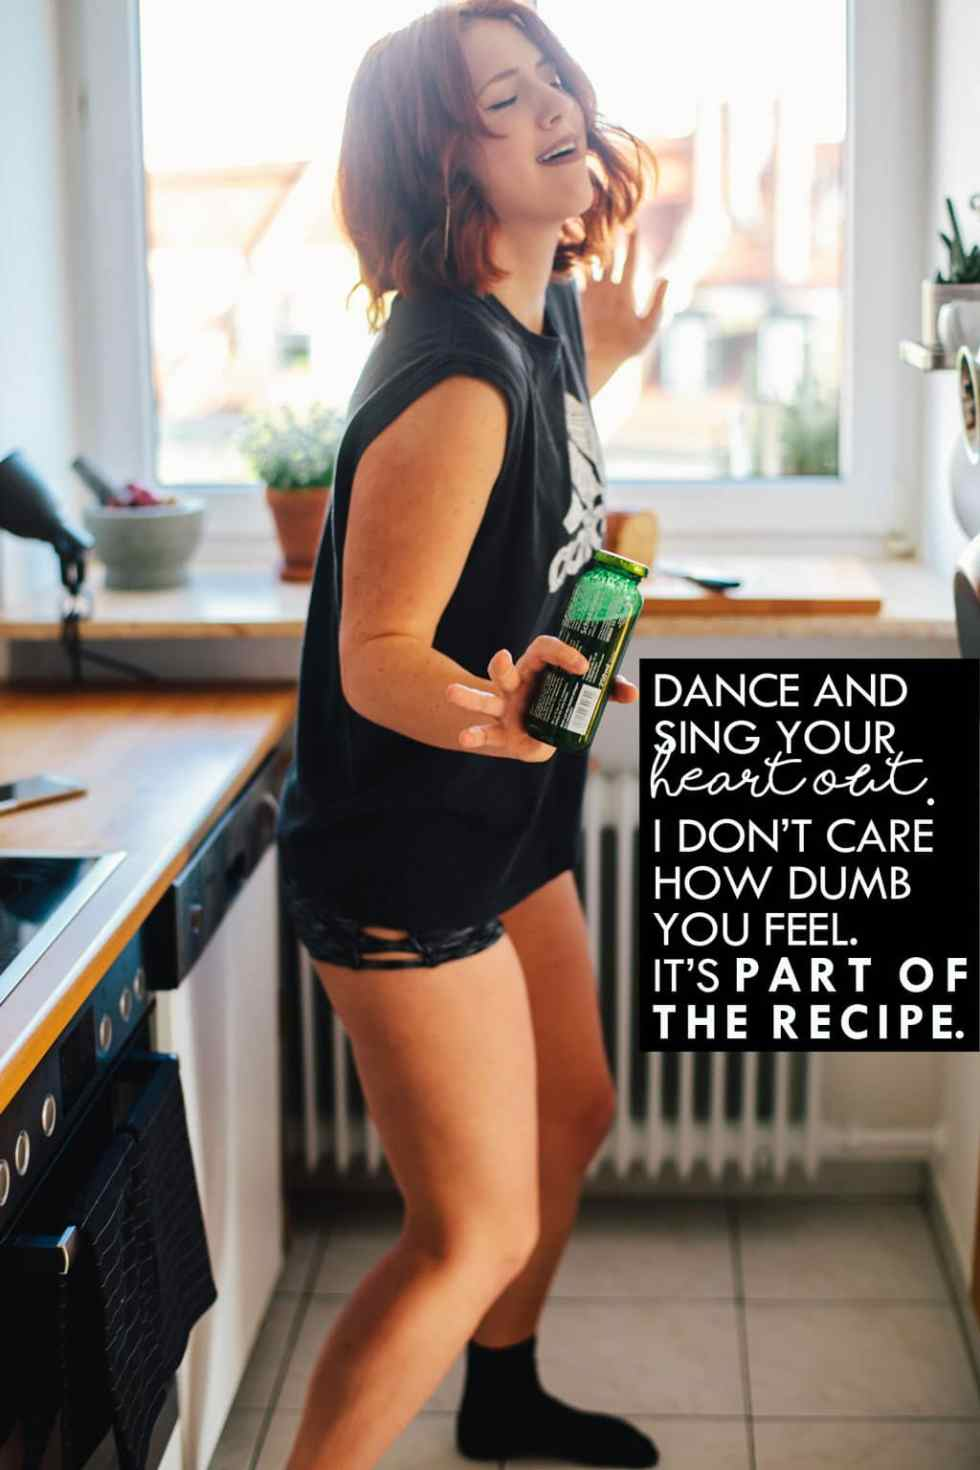 A guide for making your mornings happier that includes dancing and singing in your kitchen (no matter how dumb you feel.)